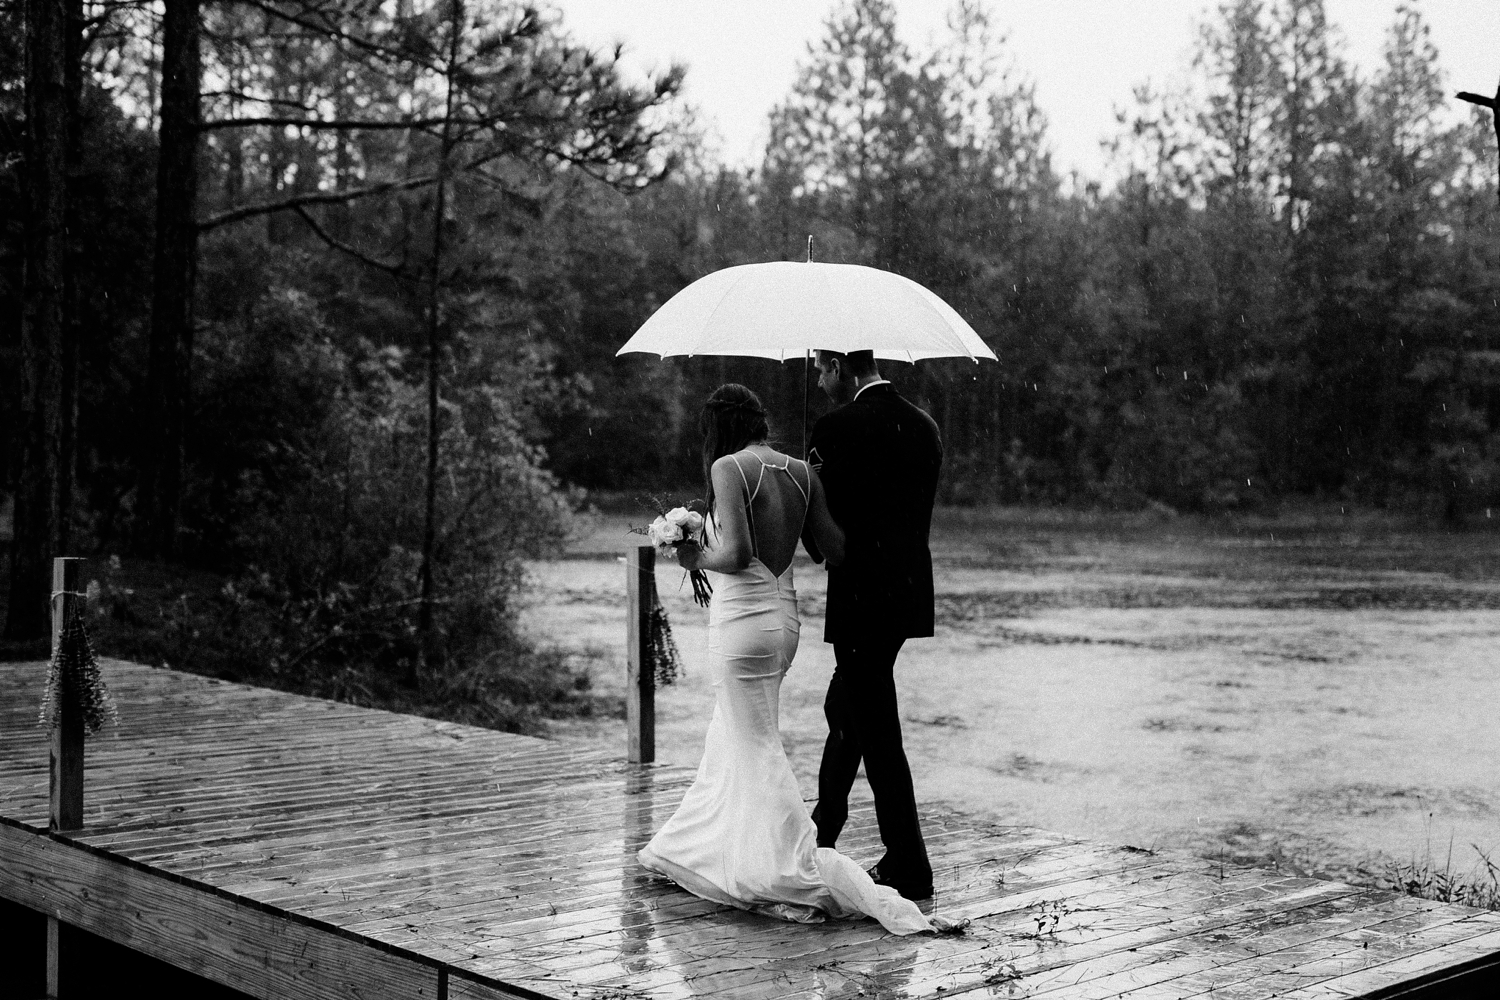 rainy-wedding-pictures-069